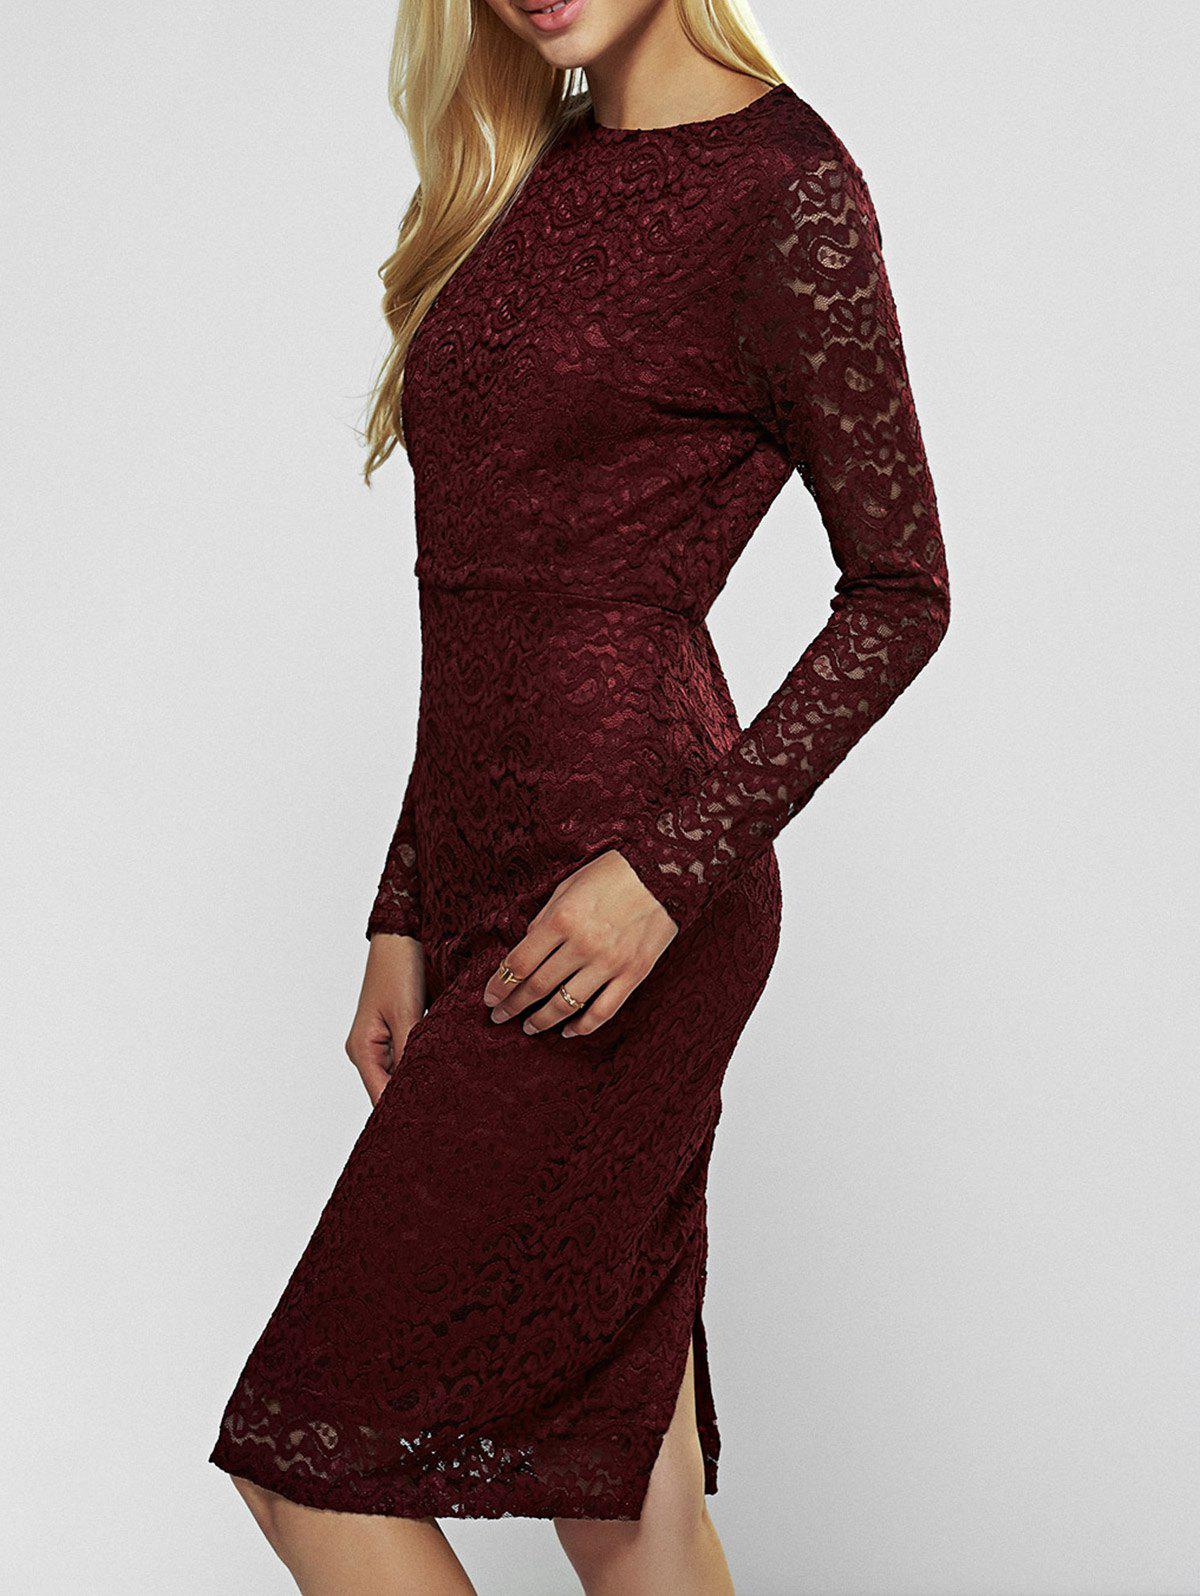 Lace Long Sleeve Sheath Evening Cocktail Dress long sleeve lace pencil sheath dress